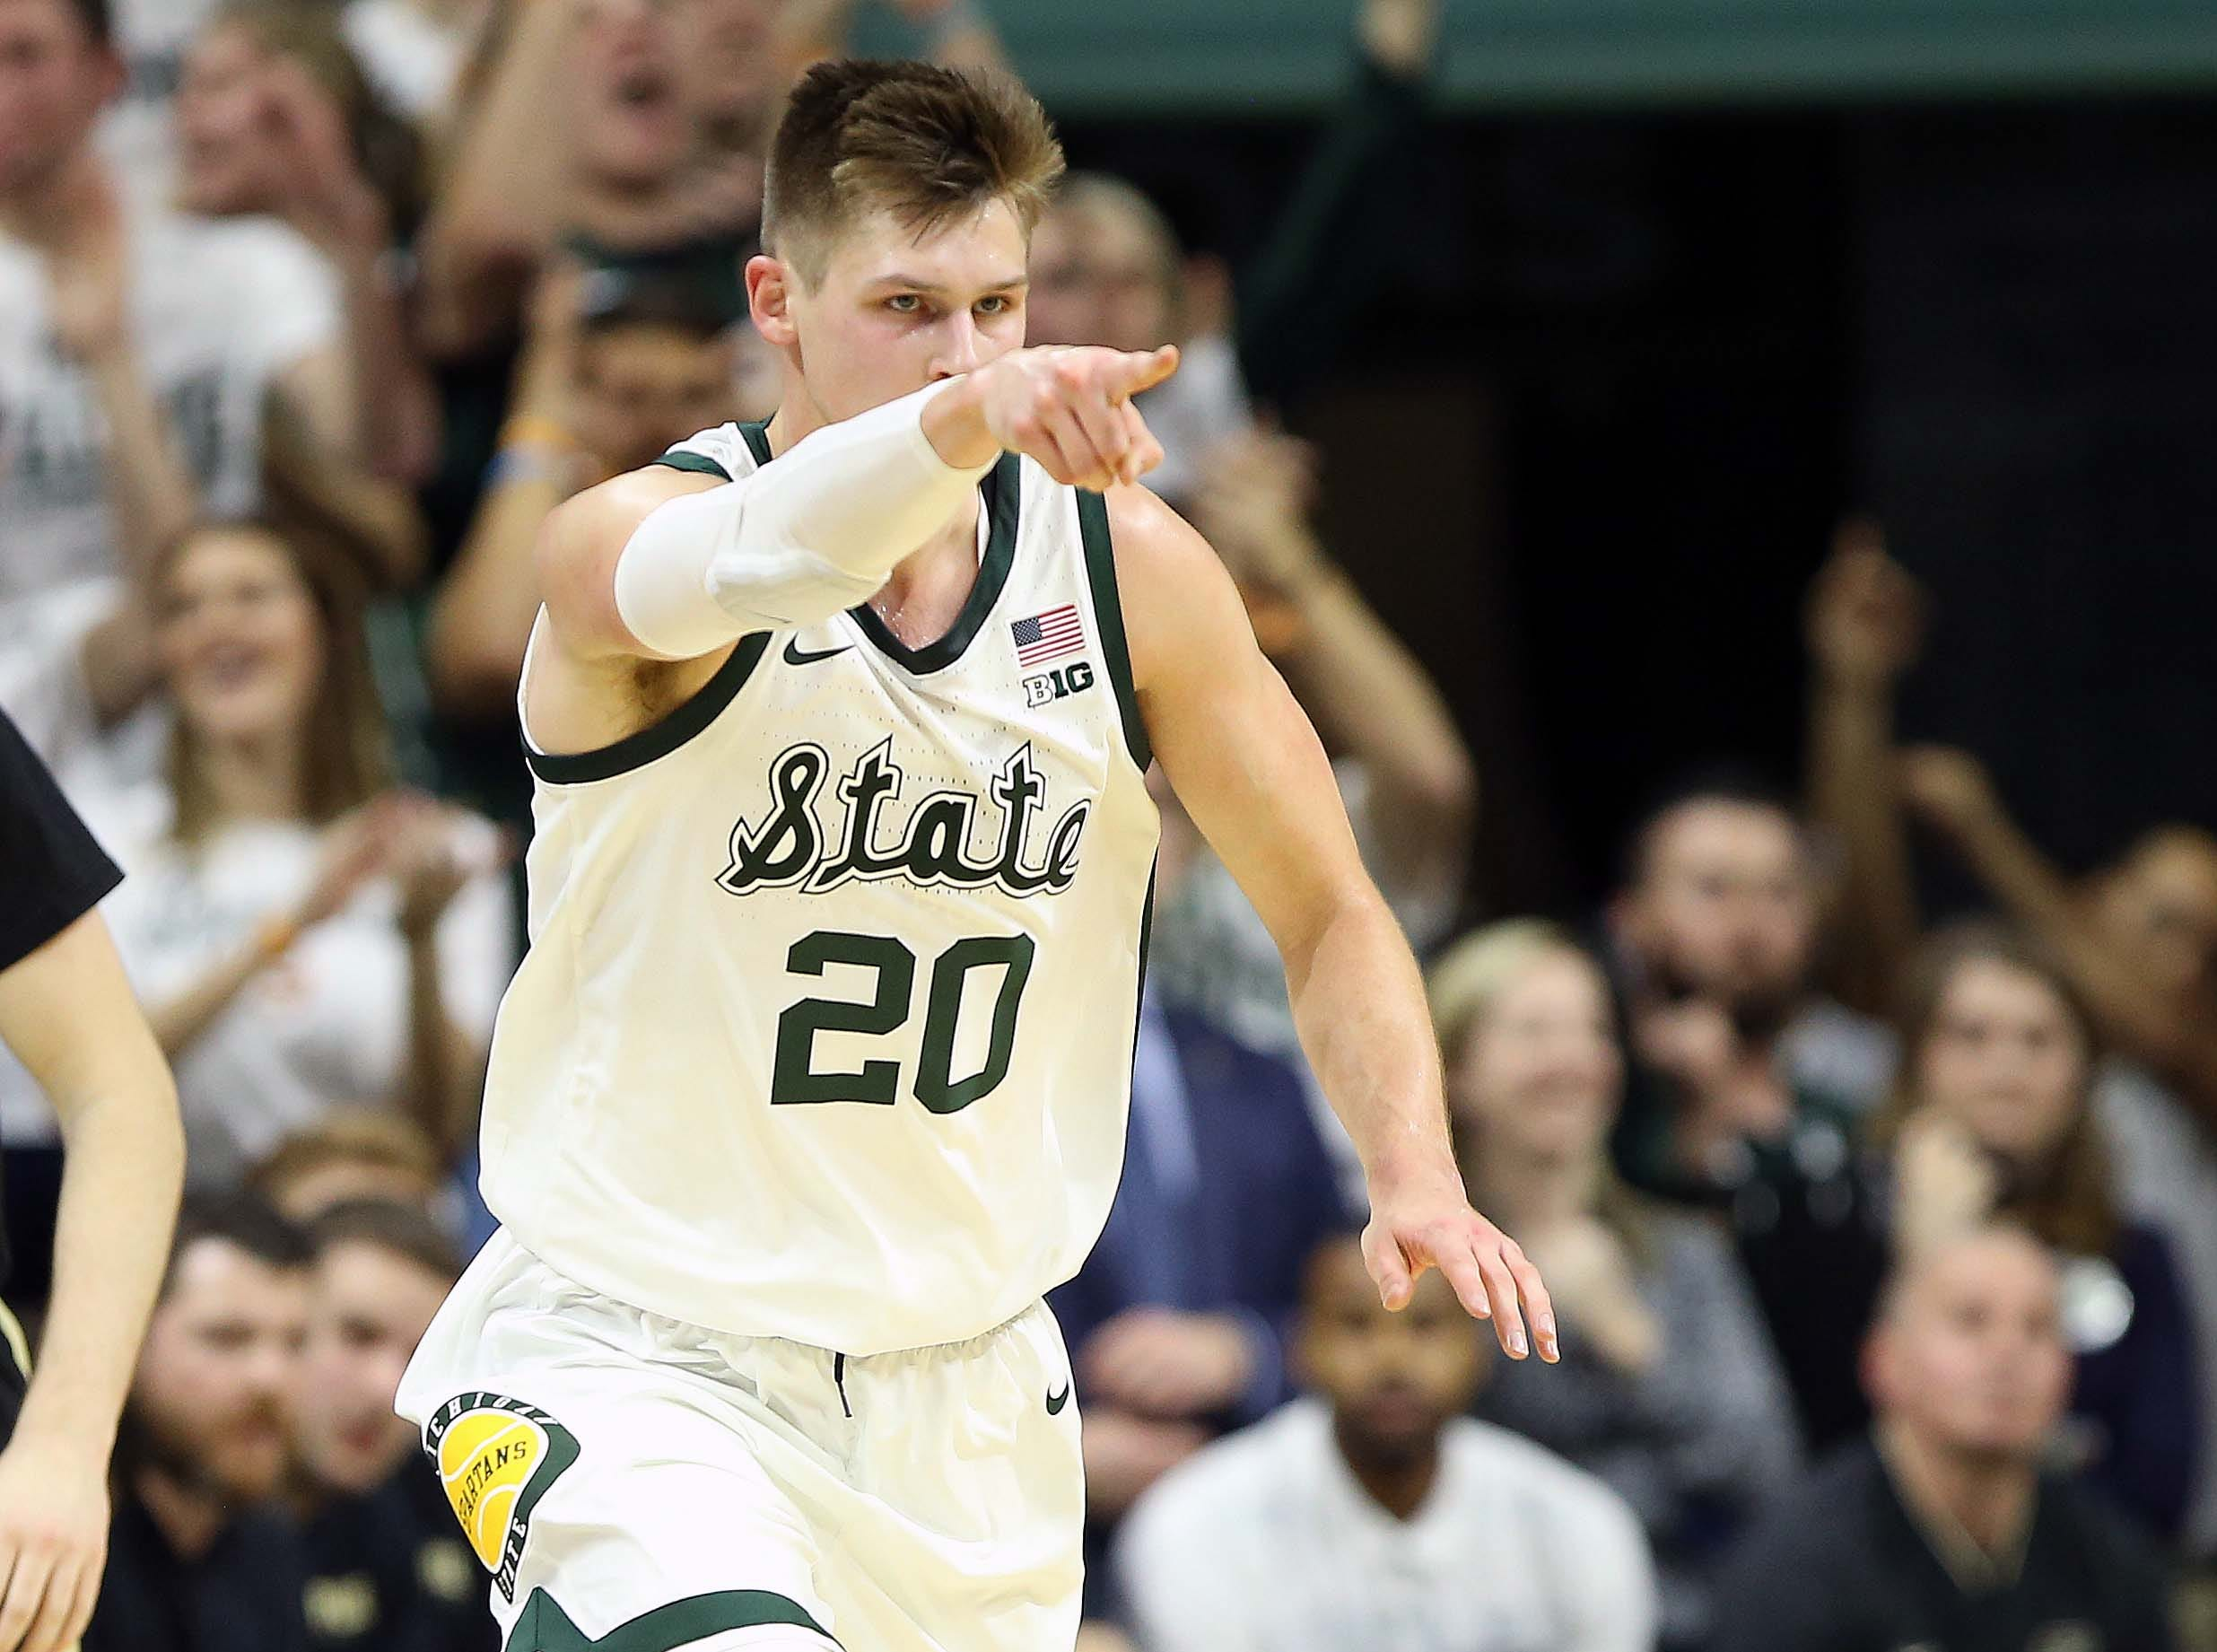 Jan 8, 2019; East Lansing, MI, USA; Michigan State Spartans guard Matt McQuaid (20) reacts during the first half of a game against the Purdue Boilermakers at the Breslin Center. Mandatory Credit: Mike Carter-USA TODAY Sports